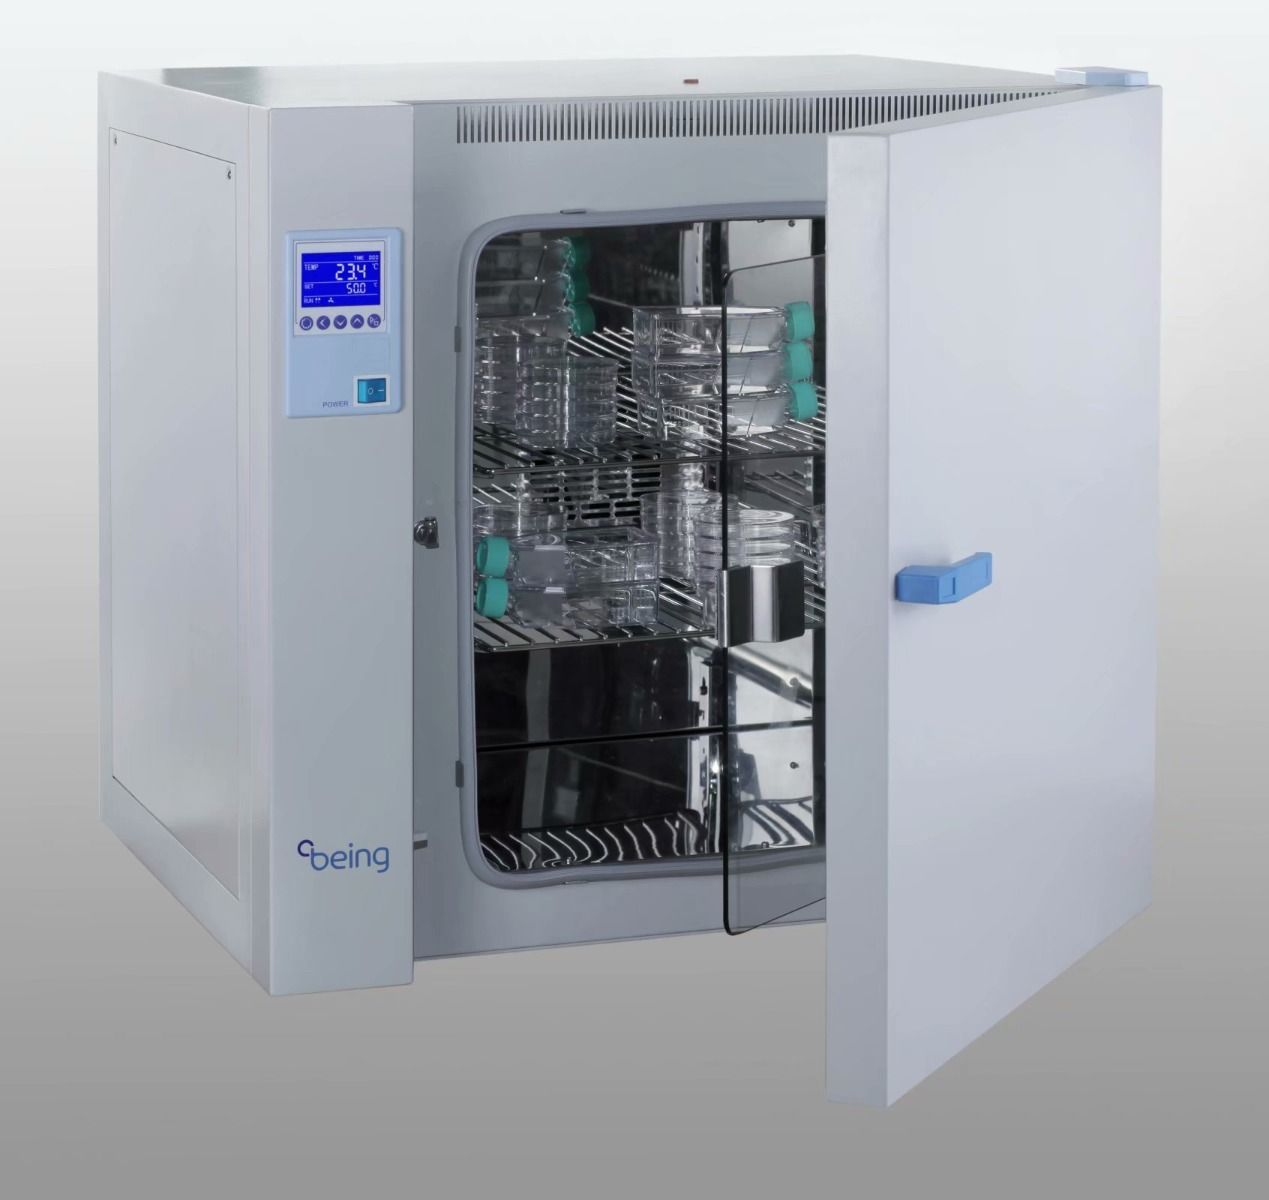 BIF-120 BEING with Fan Incubator, amb.+5-80℃, 128 liters